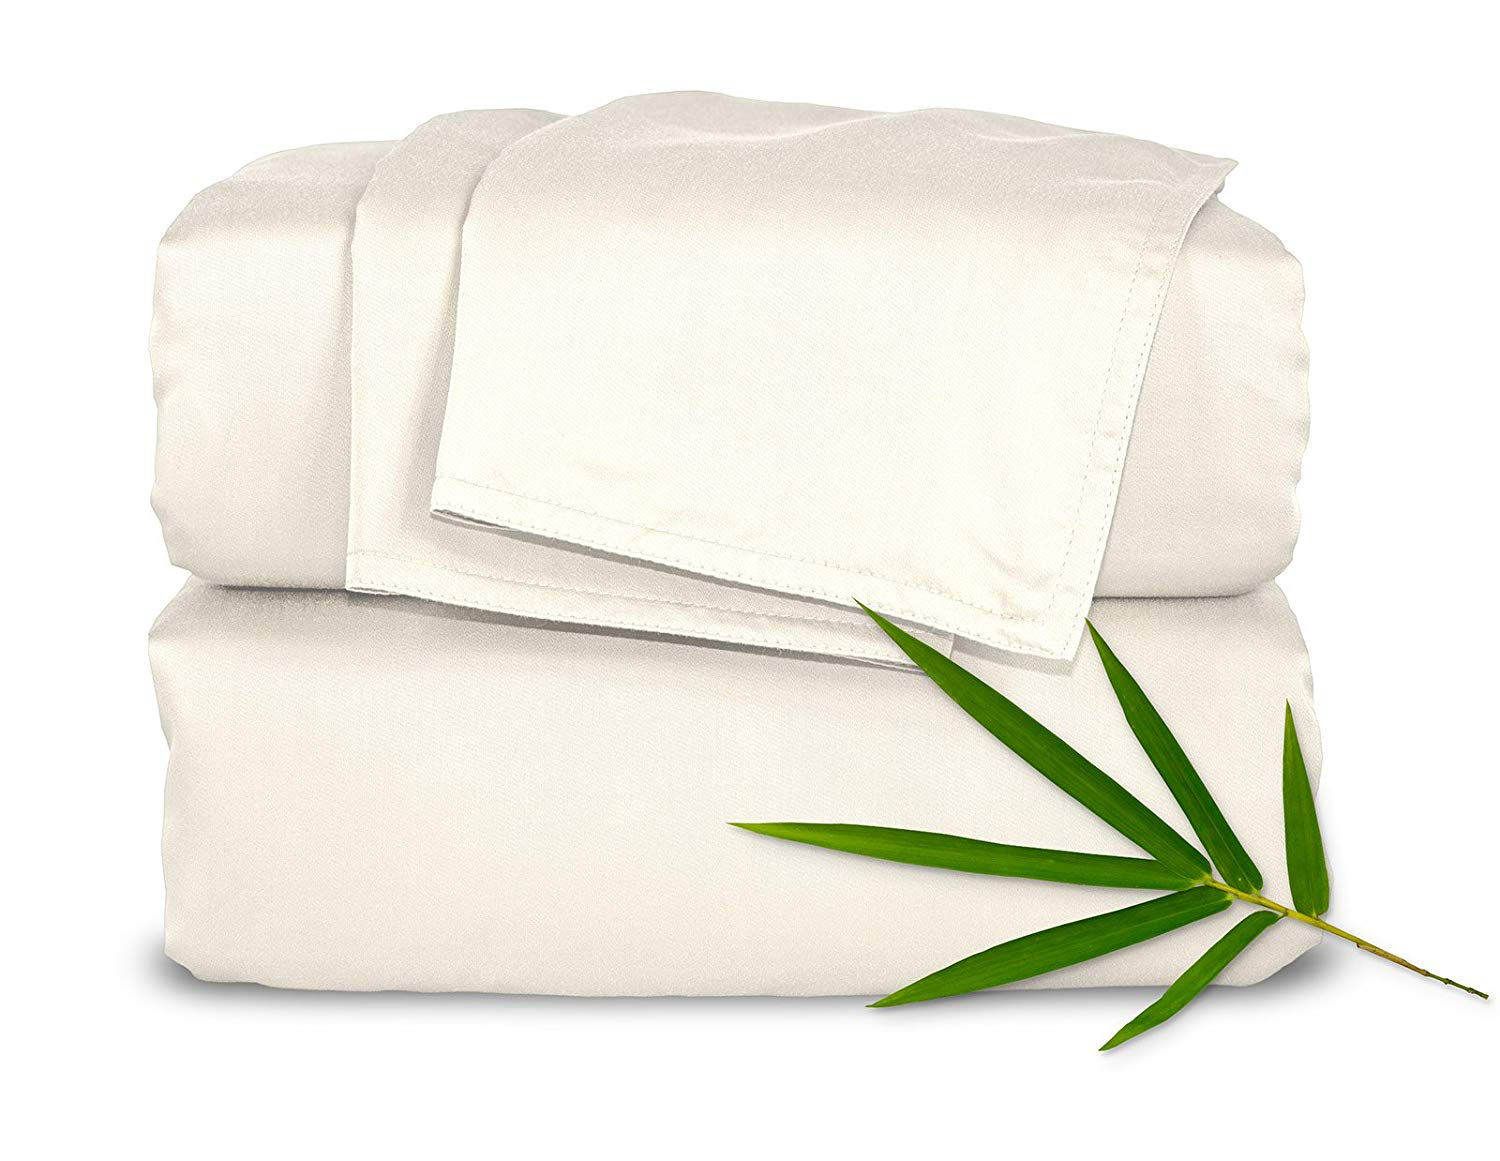 Pure Bamboo Sheets Sheets Set - Bamboo Cooling Sheets